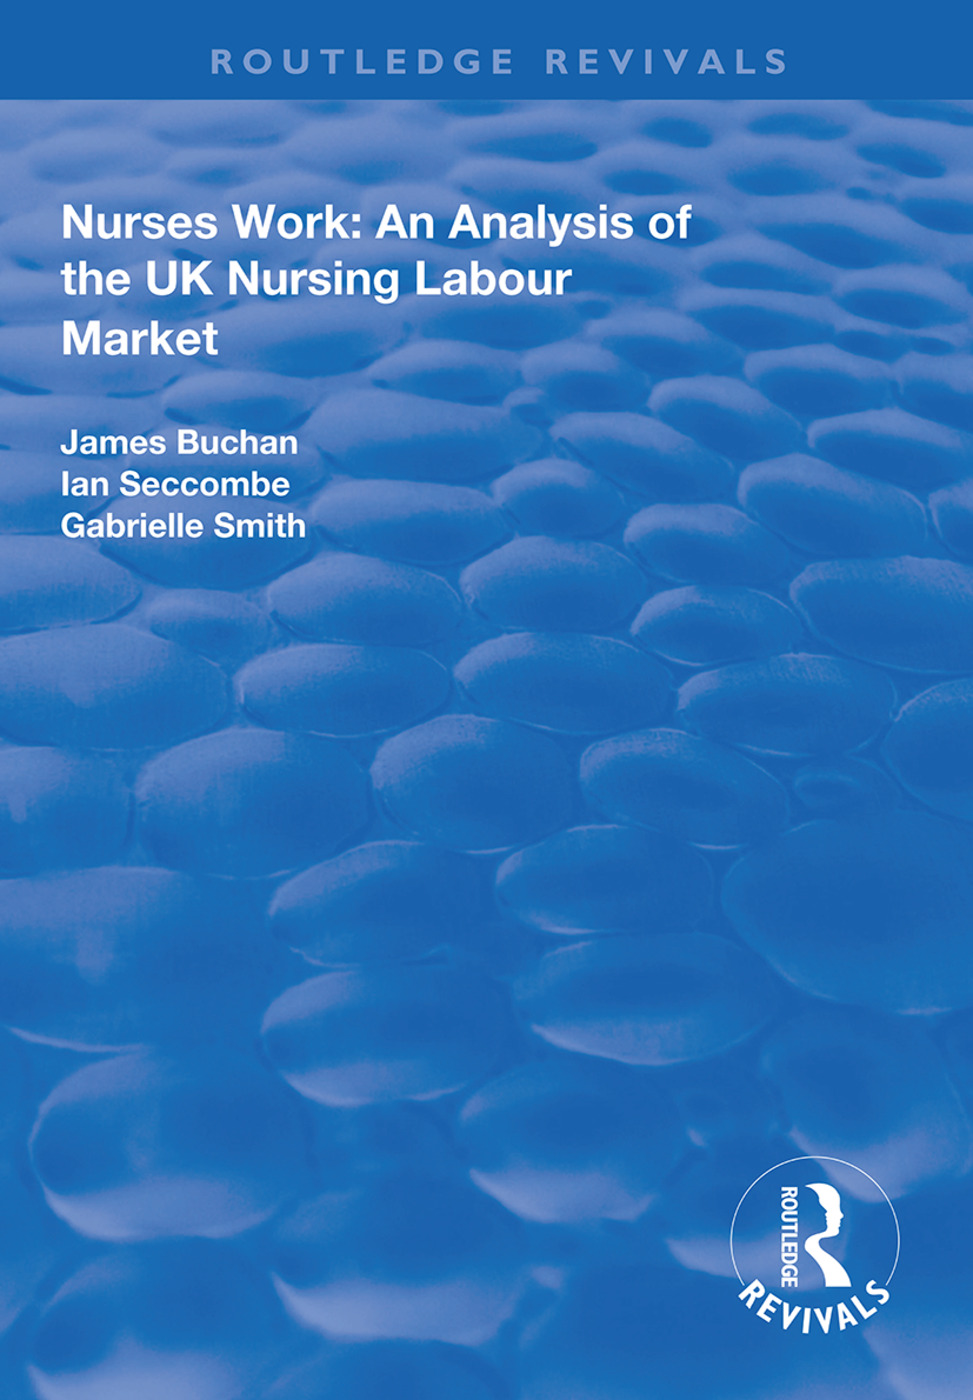 Nurses Work: An Analysis of the UK Nursing Labour Market book cover